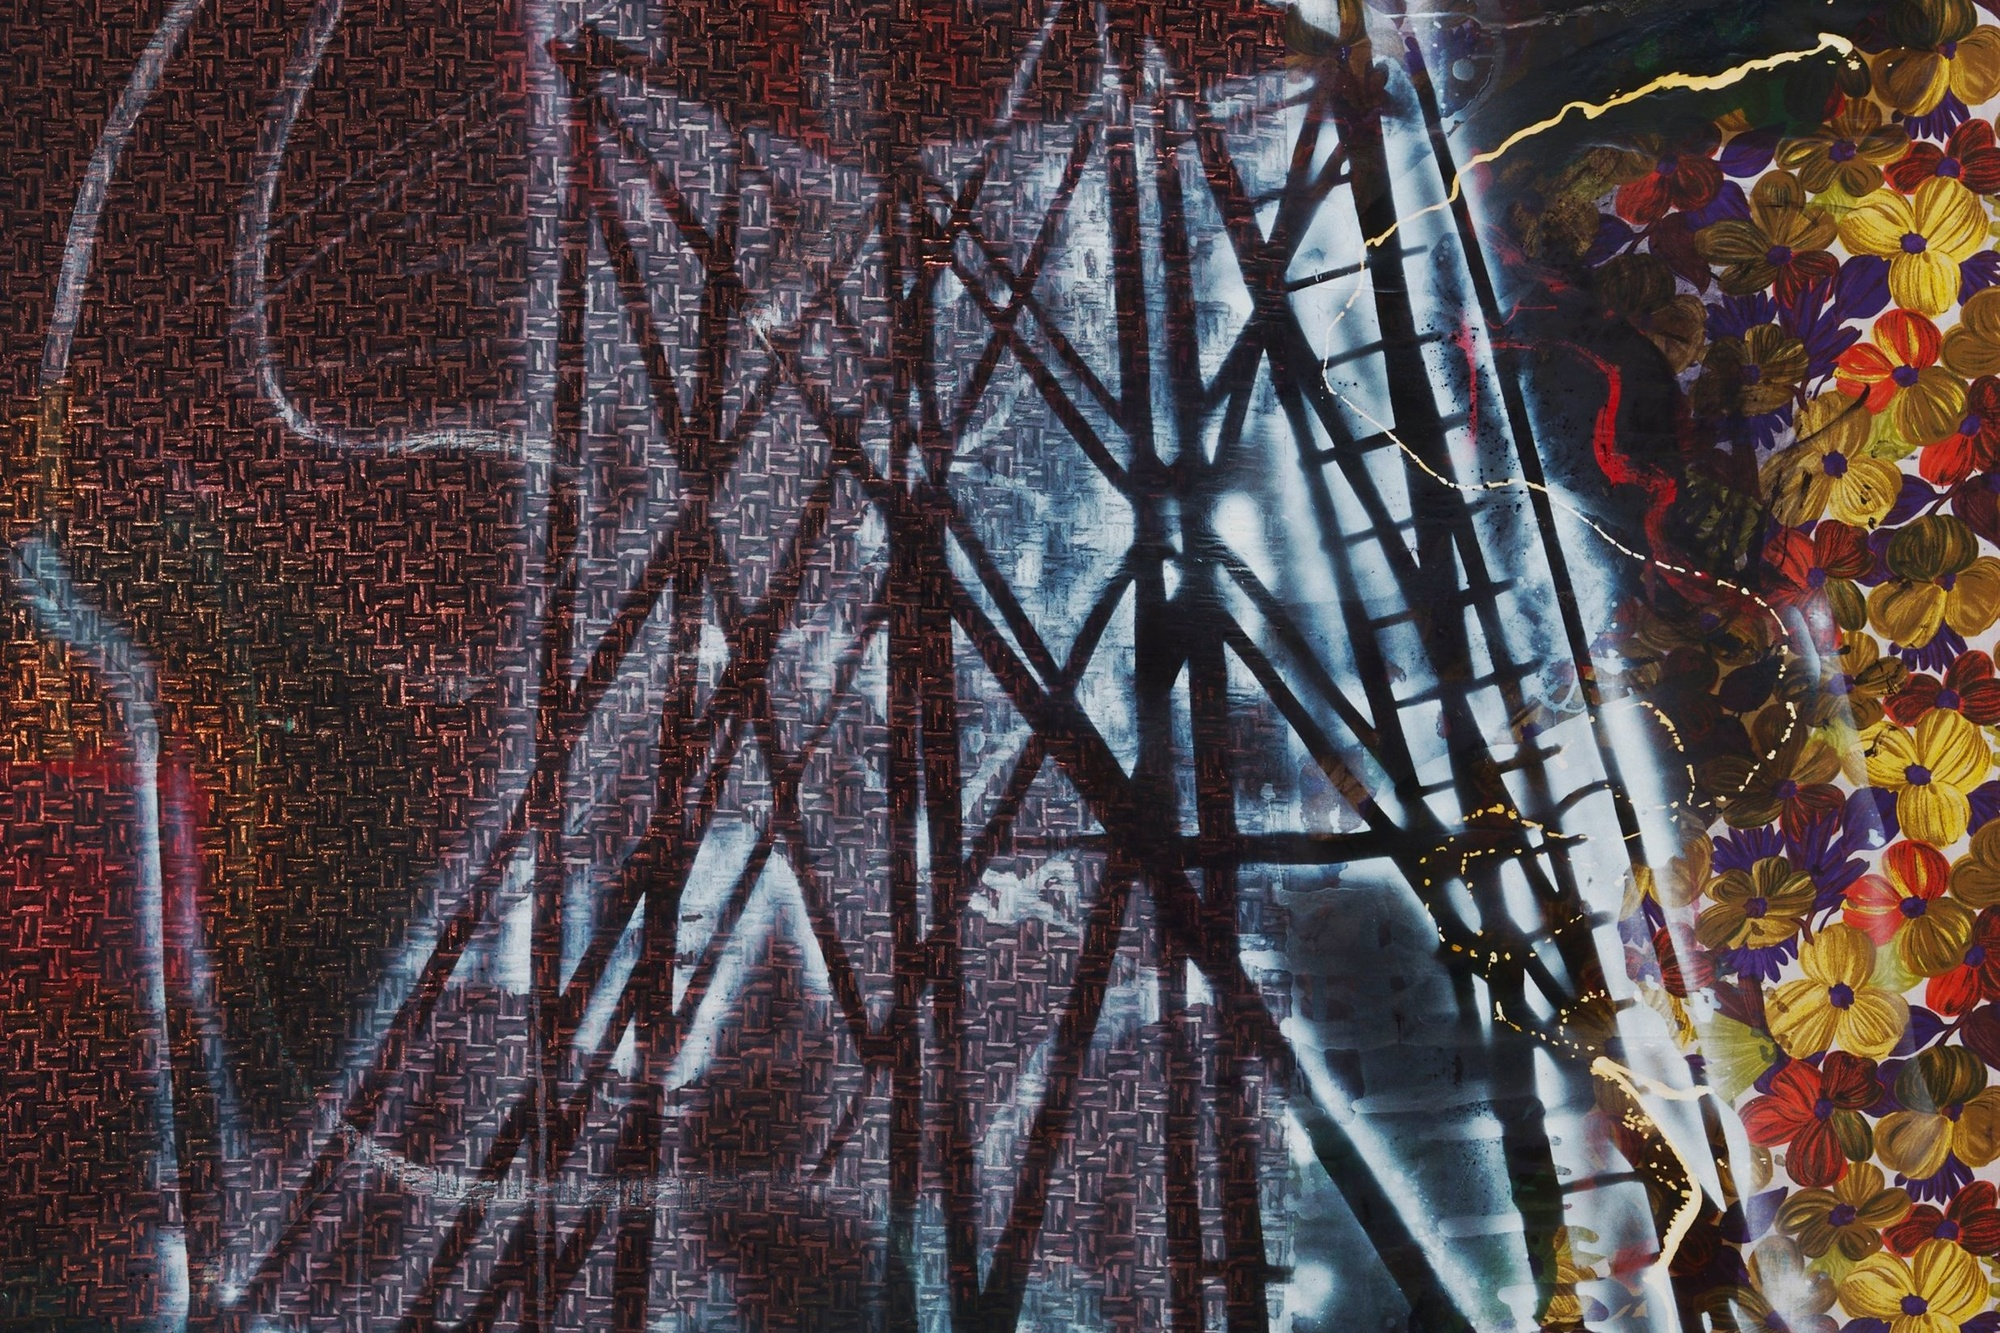 Sigmar Polke. Watchtower (Hochsitz). 1984. Synthetic polymer paints and dry pigment on fabric, 9′ 10″ × 7′ 4½″ (300 × 224.8 cm). The Museum of Modern Art, New York. Fractional and promised gift of Jo Carole and Ronald S. Lauder. © 2013 Estate of Sigmar Polke/Artists Rights Society (ARS), New York/VG Bild-Kunst, Bonn